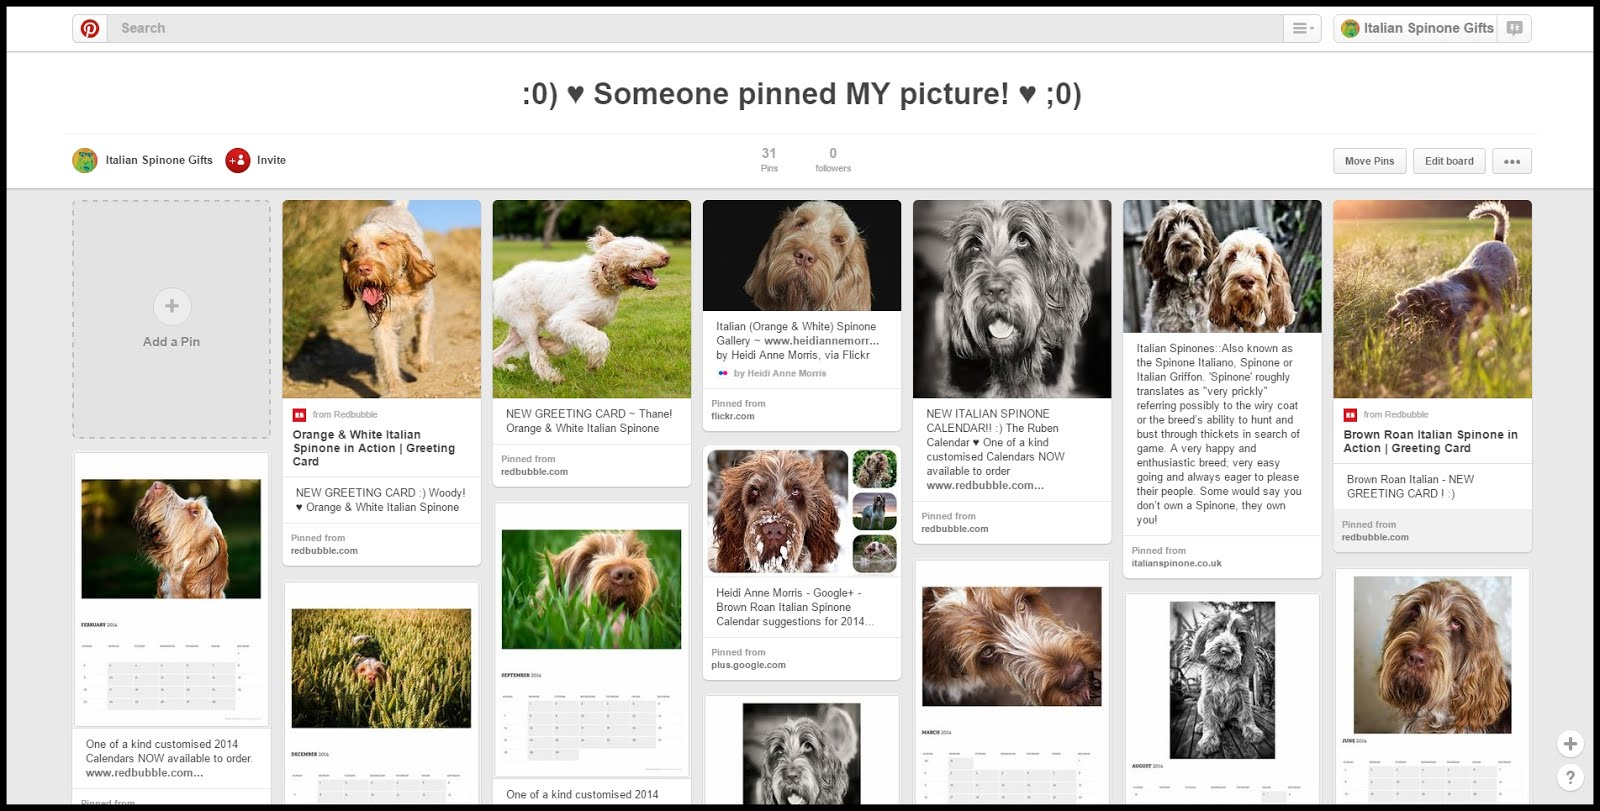 Italian Spinone Gifts & Pictures on Pinterest